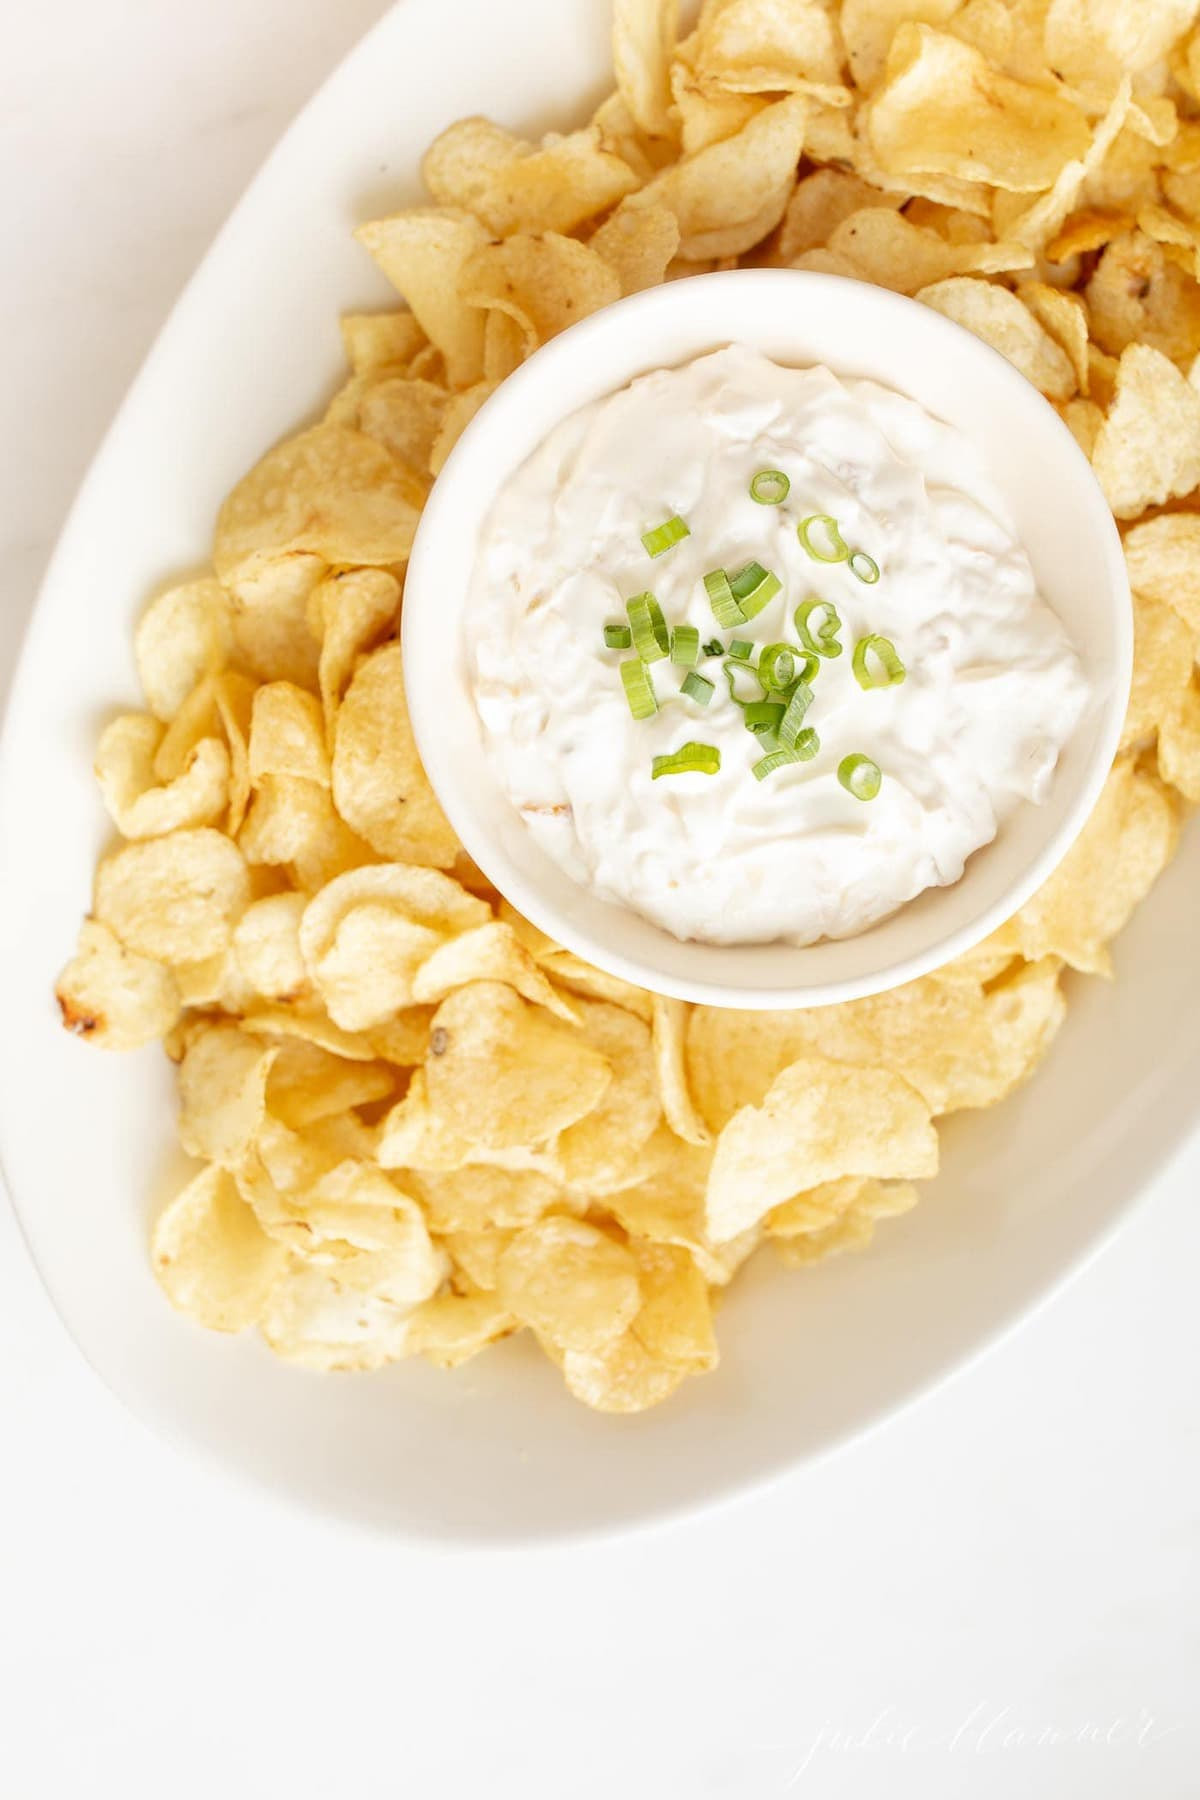 sour cream chip dip in a bowl on a platter with chips